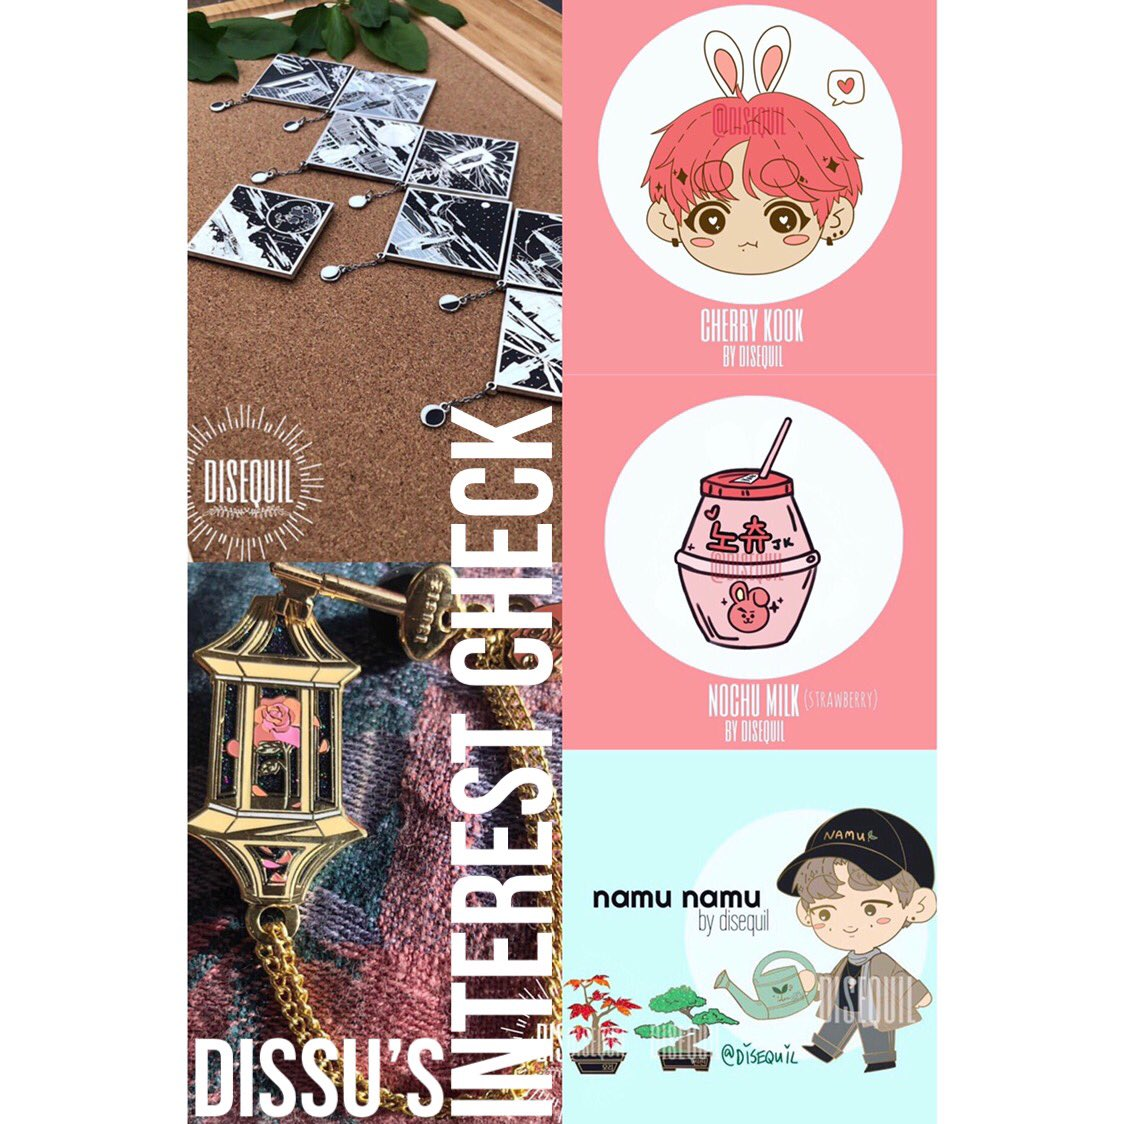 [ 🌱 RT🙏 ] Interest check form is now up! If you are interested in purchasing any of the pins below, please fill out my form as it will help me A LOT when it comes time to determine how many pre-order slots to open! forms.gle/TU6fp3AEtffnq8… #DISSUMERCH #BTSPINS